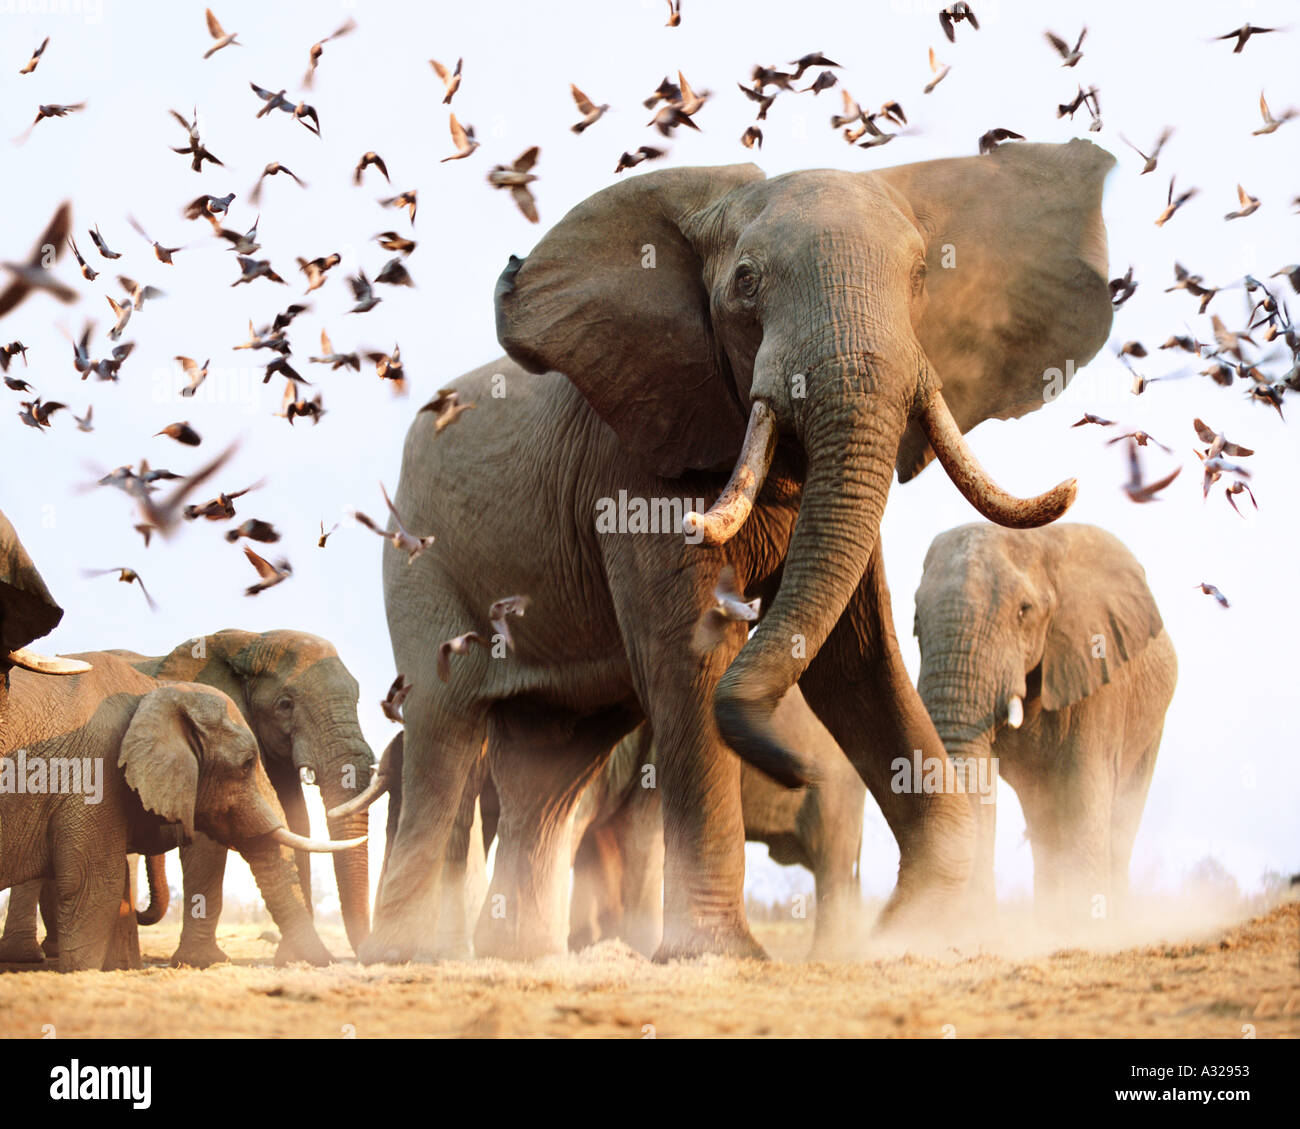 African elephants disturbing flock of birds Savuti Botswana - Stock Image